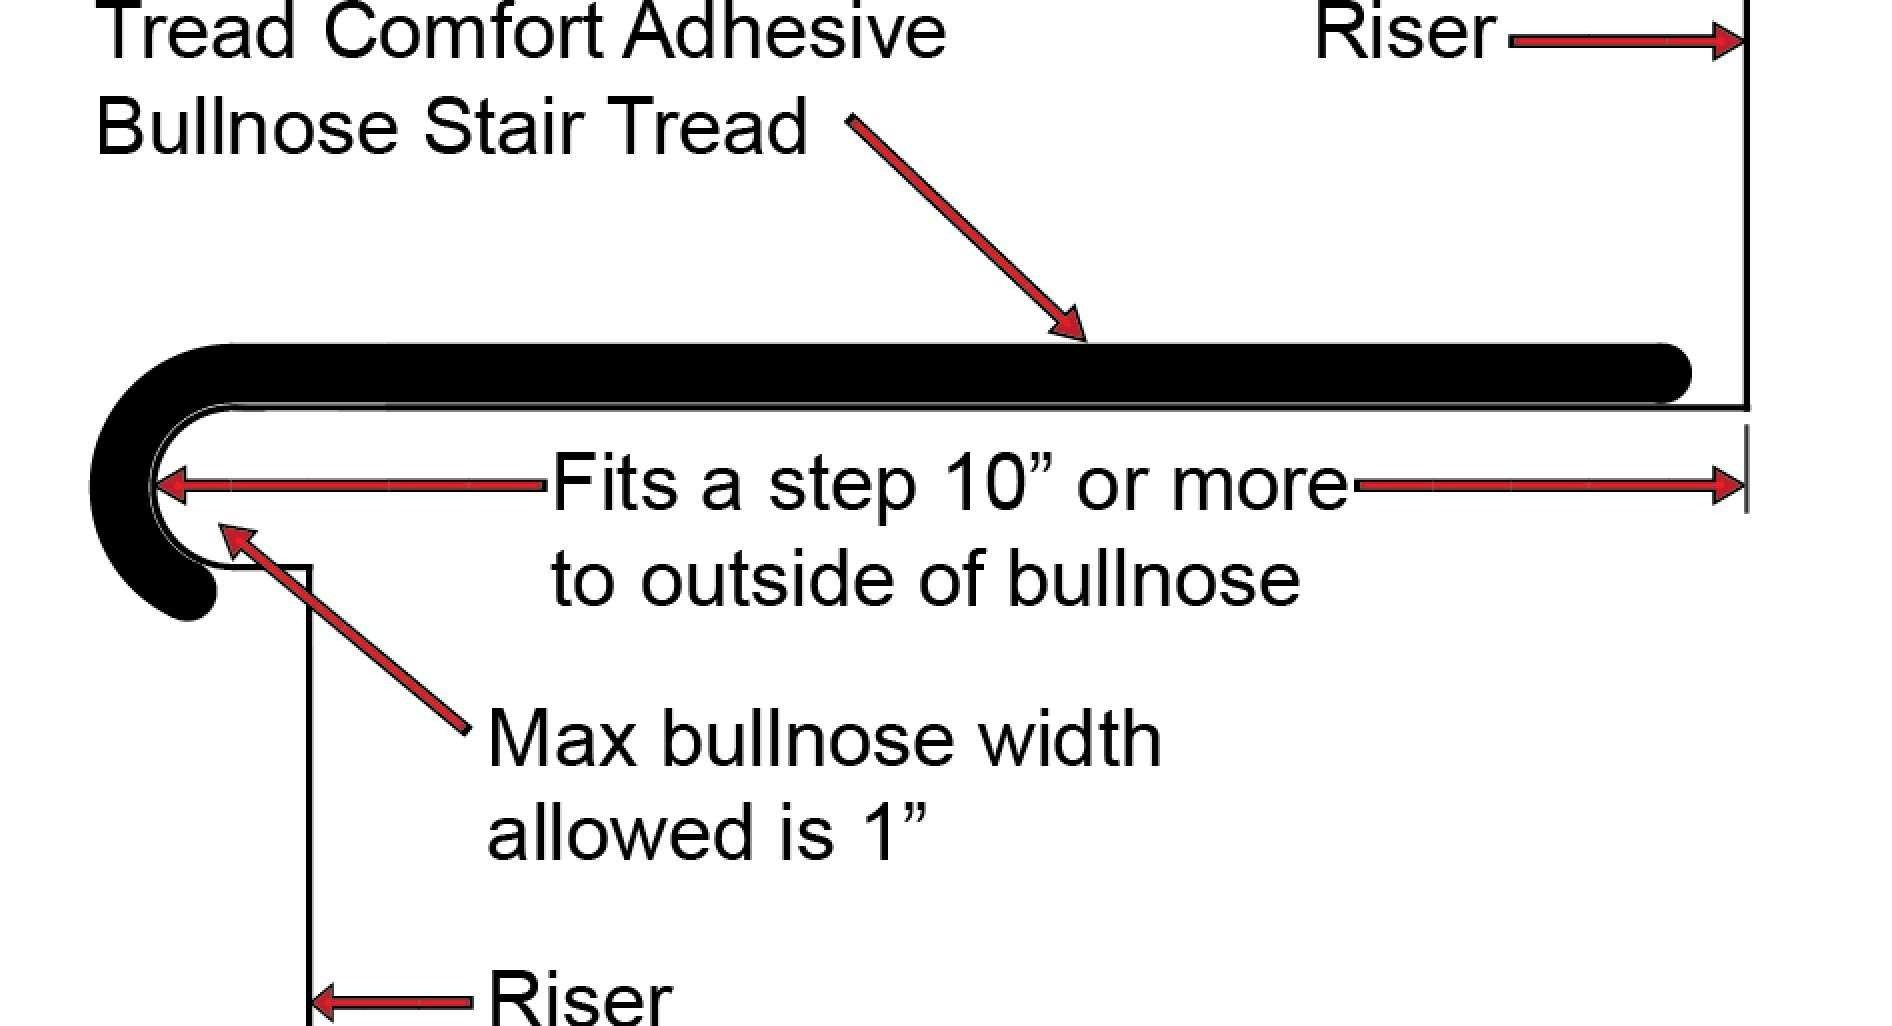 Buying Guide For Caprice Almond Bullnose Carpet Stair Tread With | Padded Carpet Stair Treads | Stair Risers | Adhesive Padding | Bullnose Padded | Staircase Makeover | Flooring